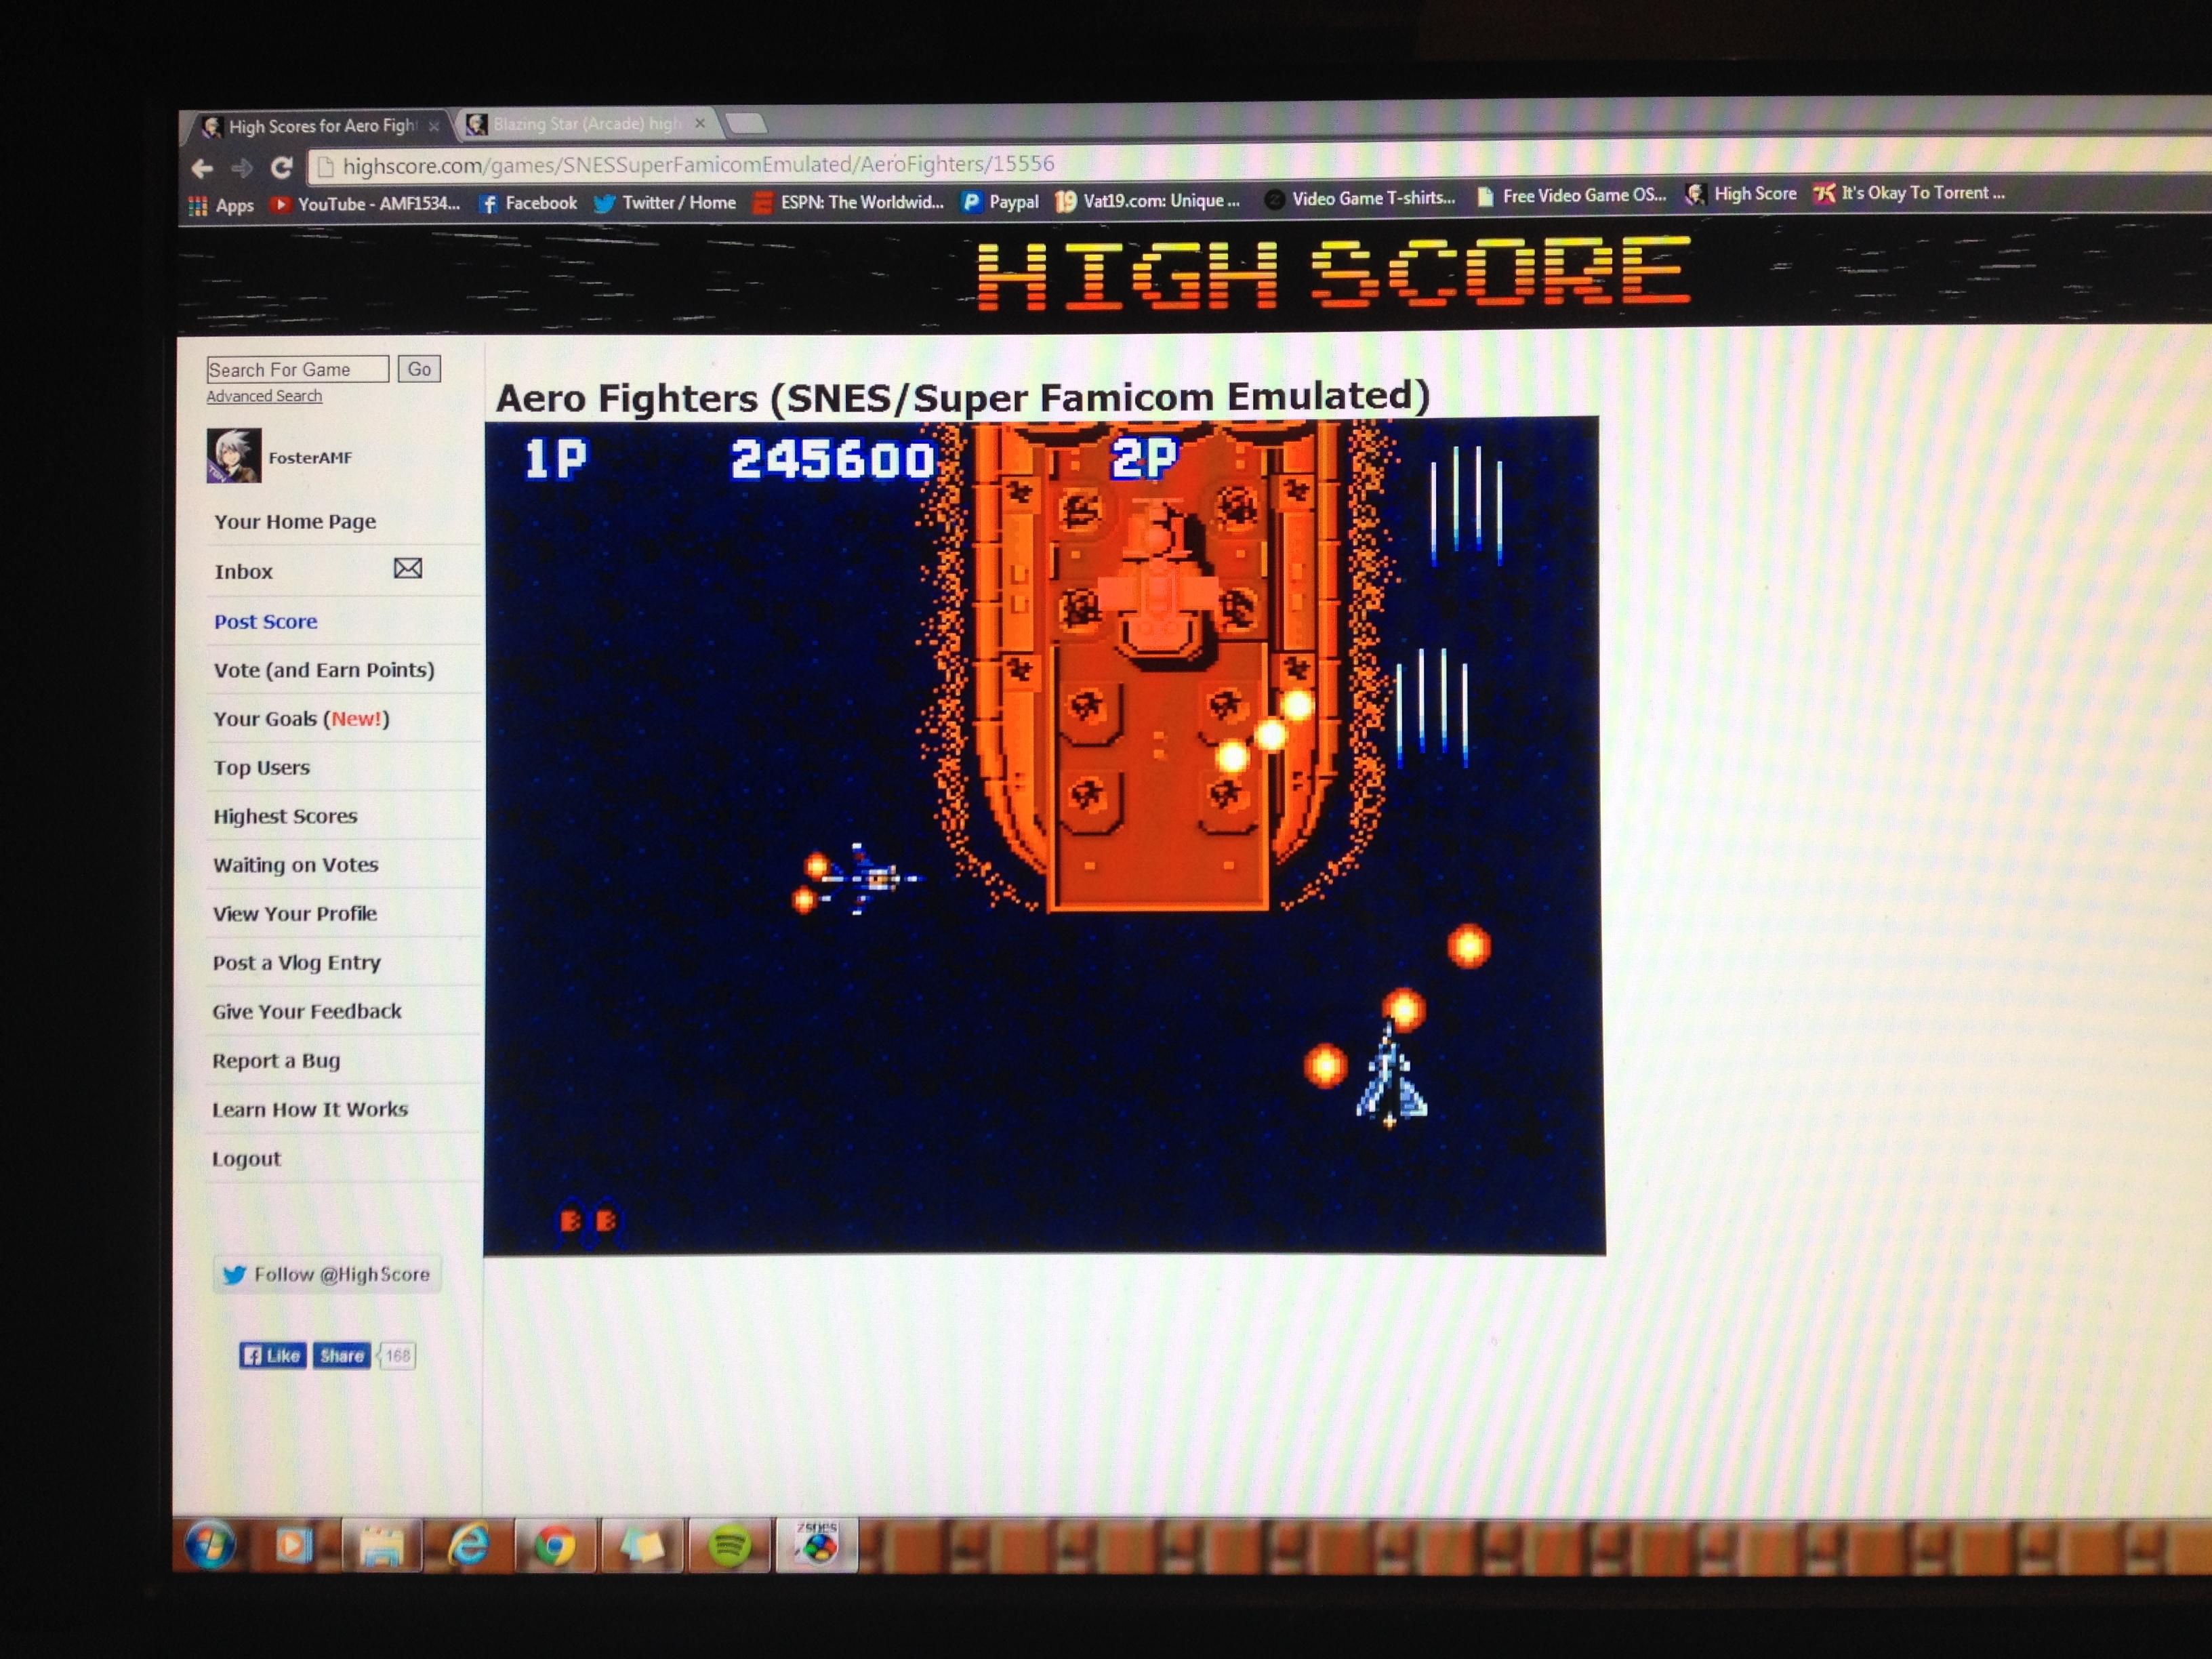 FosterAMF: Aero Fighters (SNES/Super Famicom Emulated) 245,600 points on 2014-04-08 01:26:18